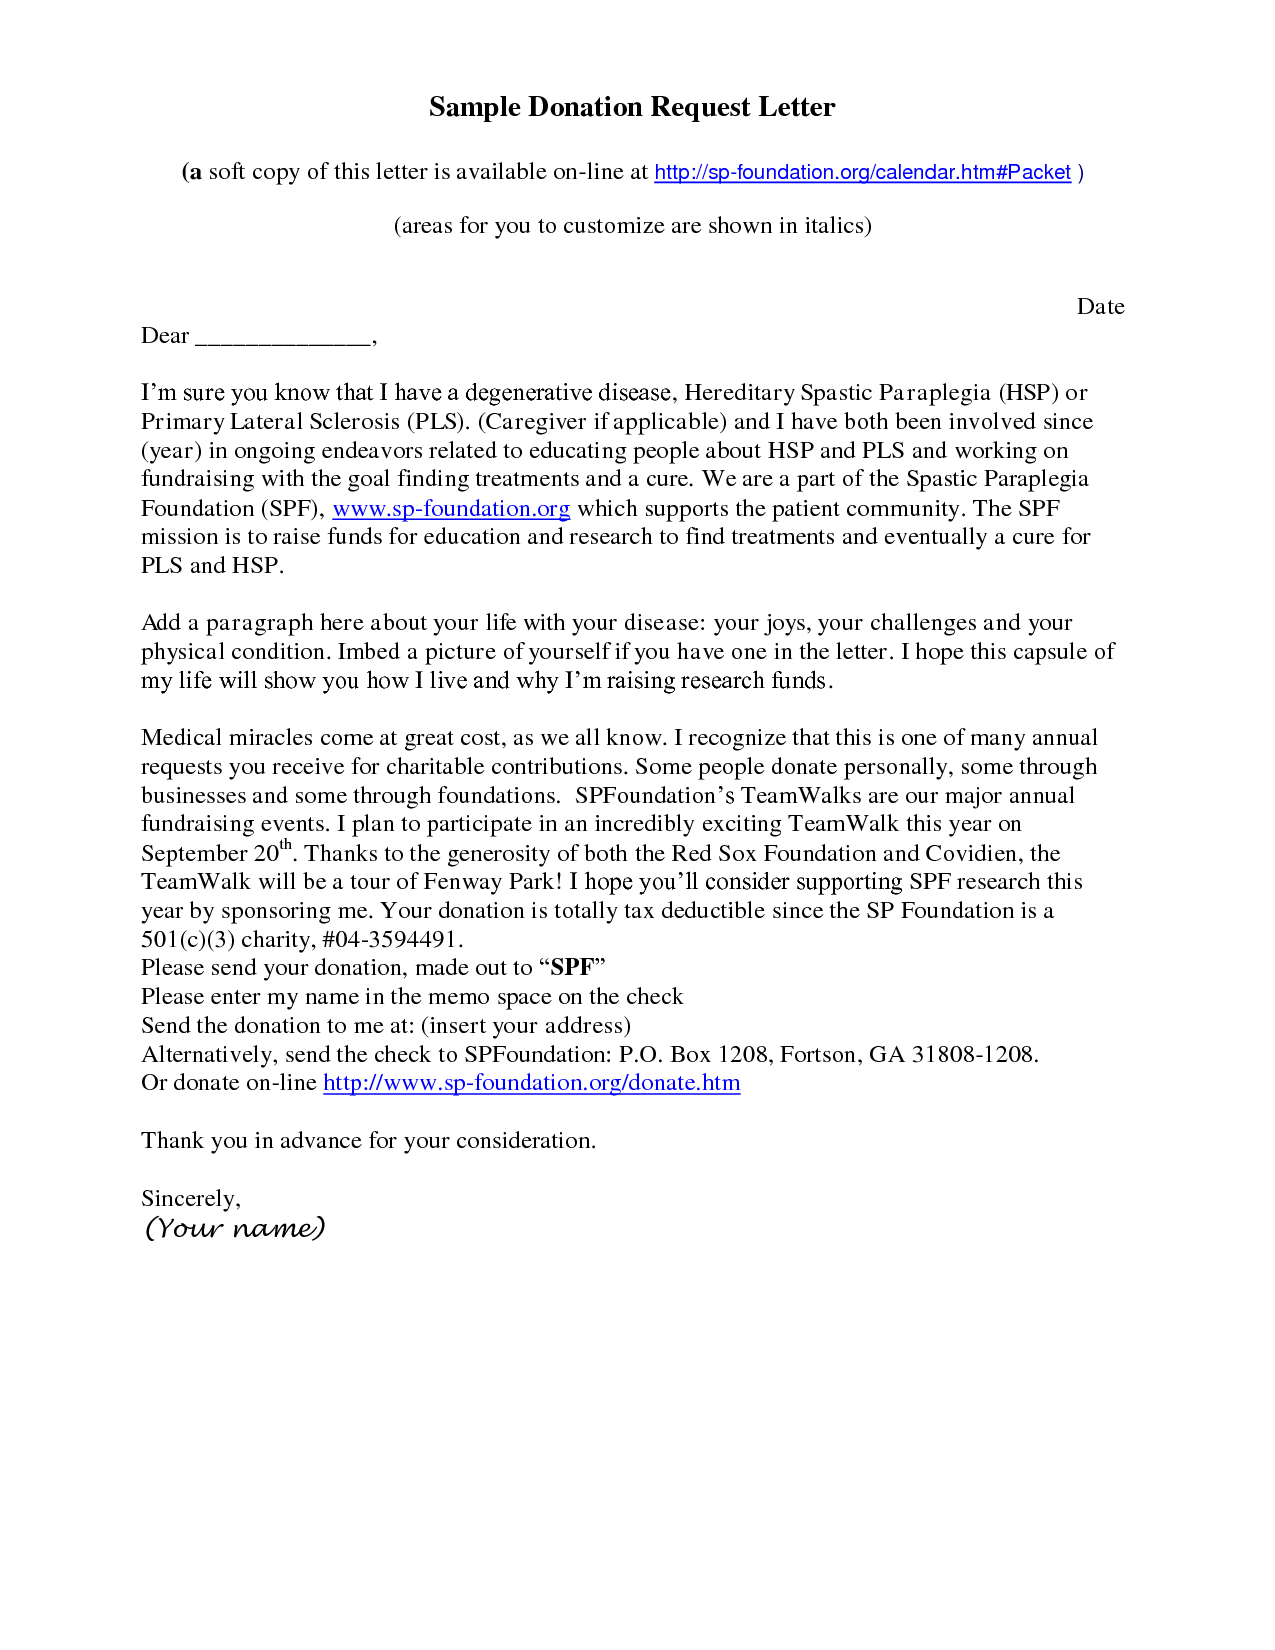 Sample Donation Letter Template - How to Write A solicitation Letter for Donations Choice Image